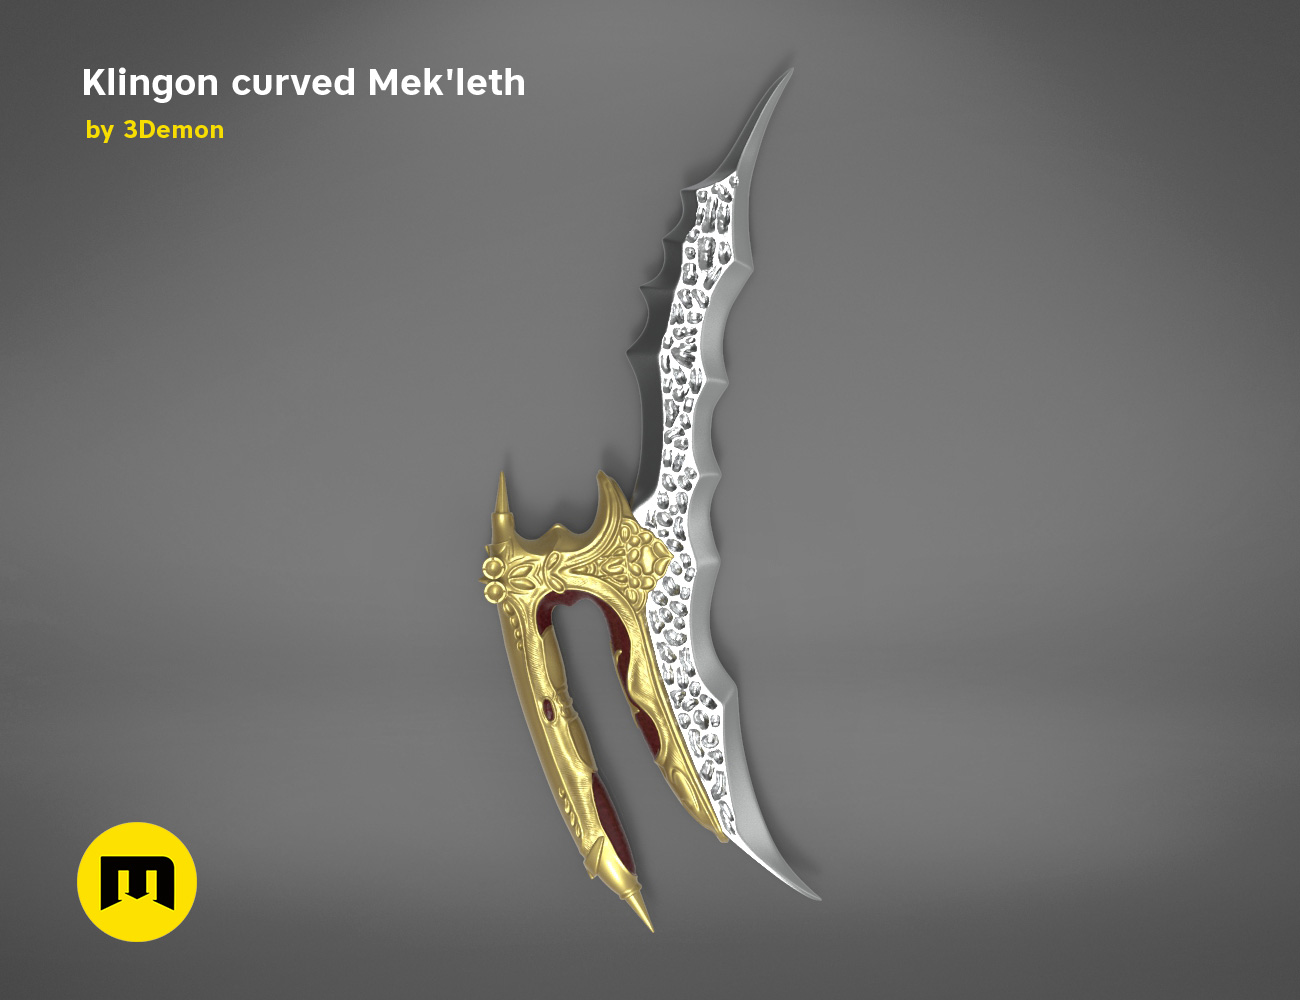 mekleth2-startrek-color.462.jpg Download OBJ file Klingon curved Mek'leth - Star Trek  • 3D printing object, 3D-mon